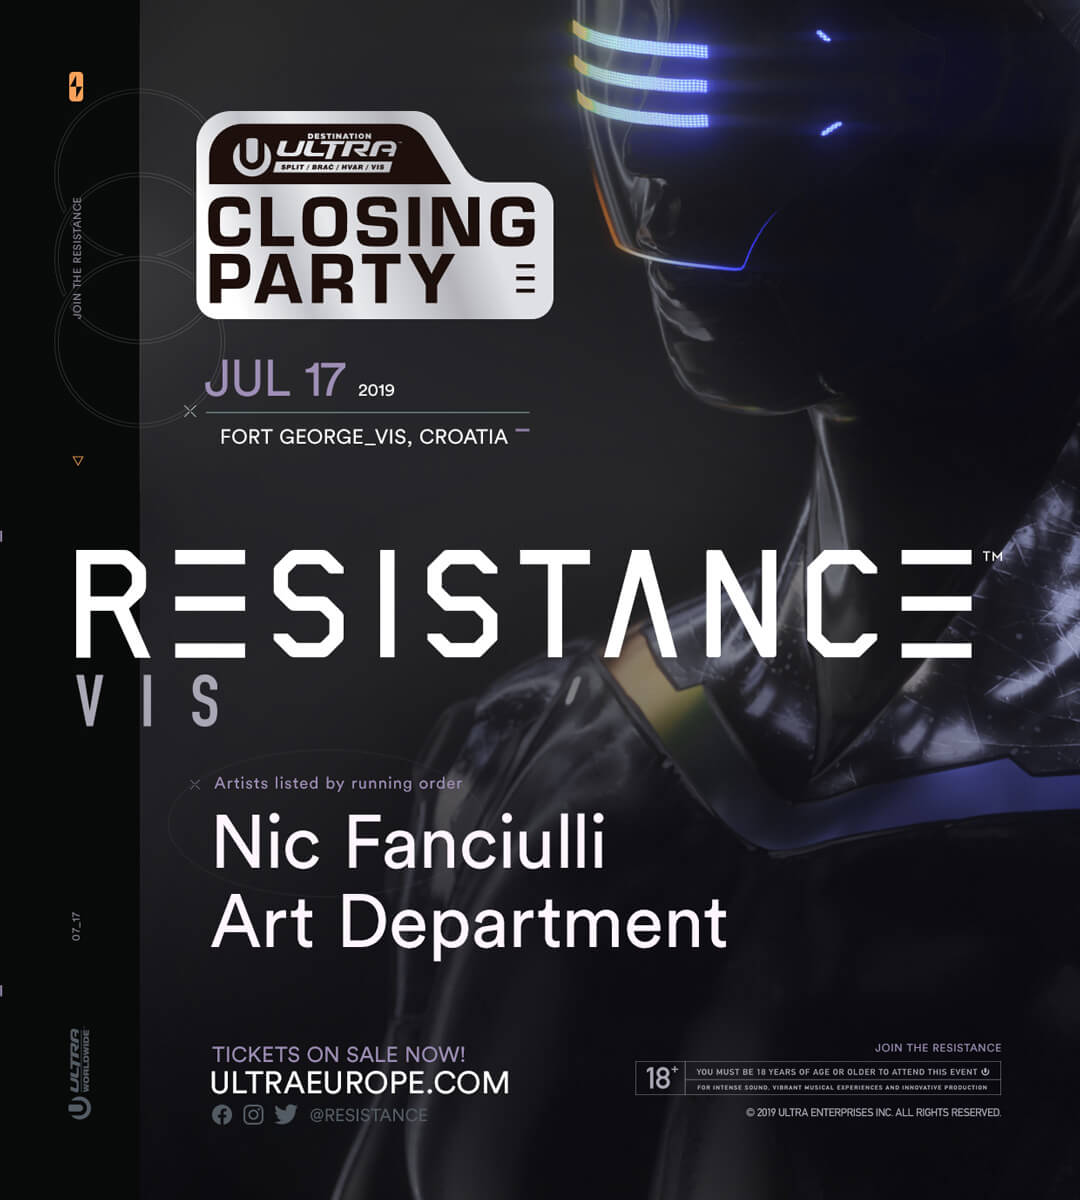 RESISTANCE Vis (Destination Ultra Closing Party)